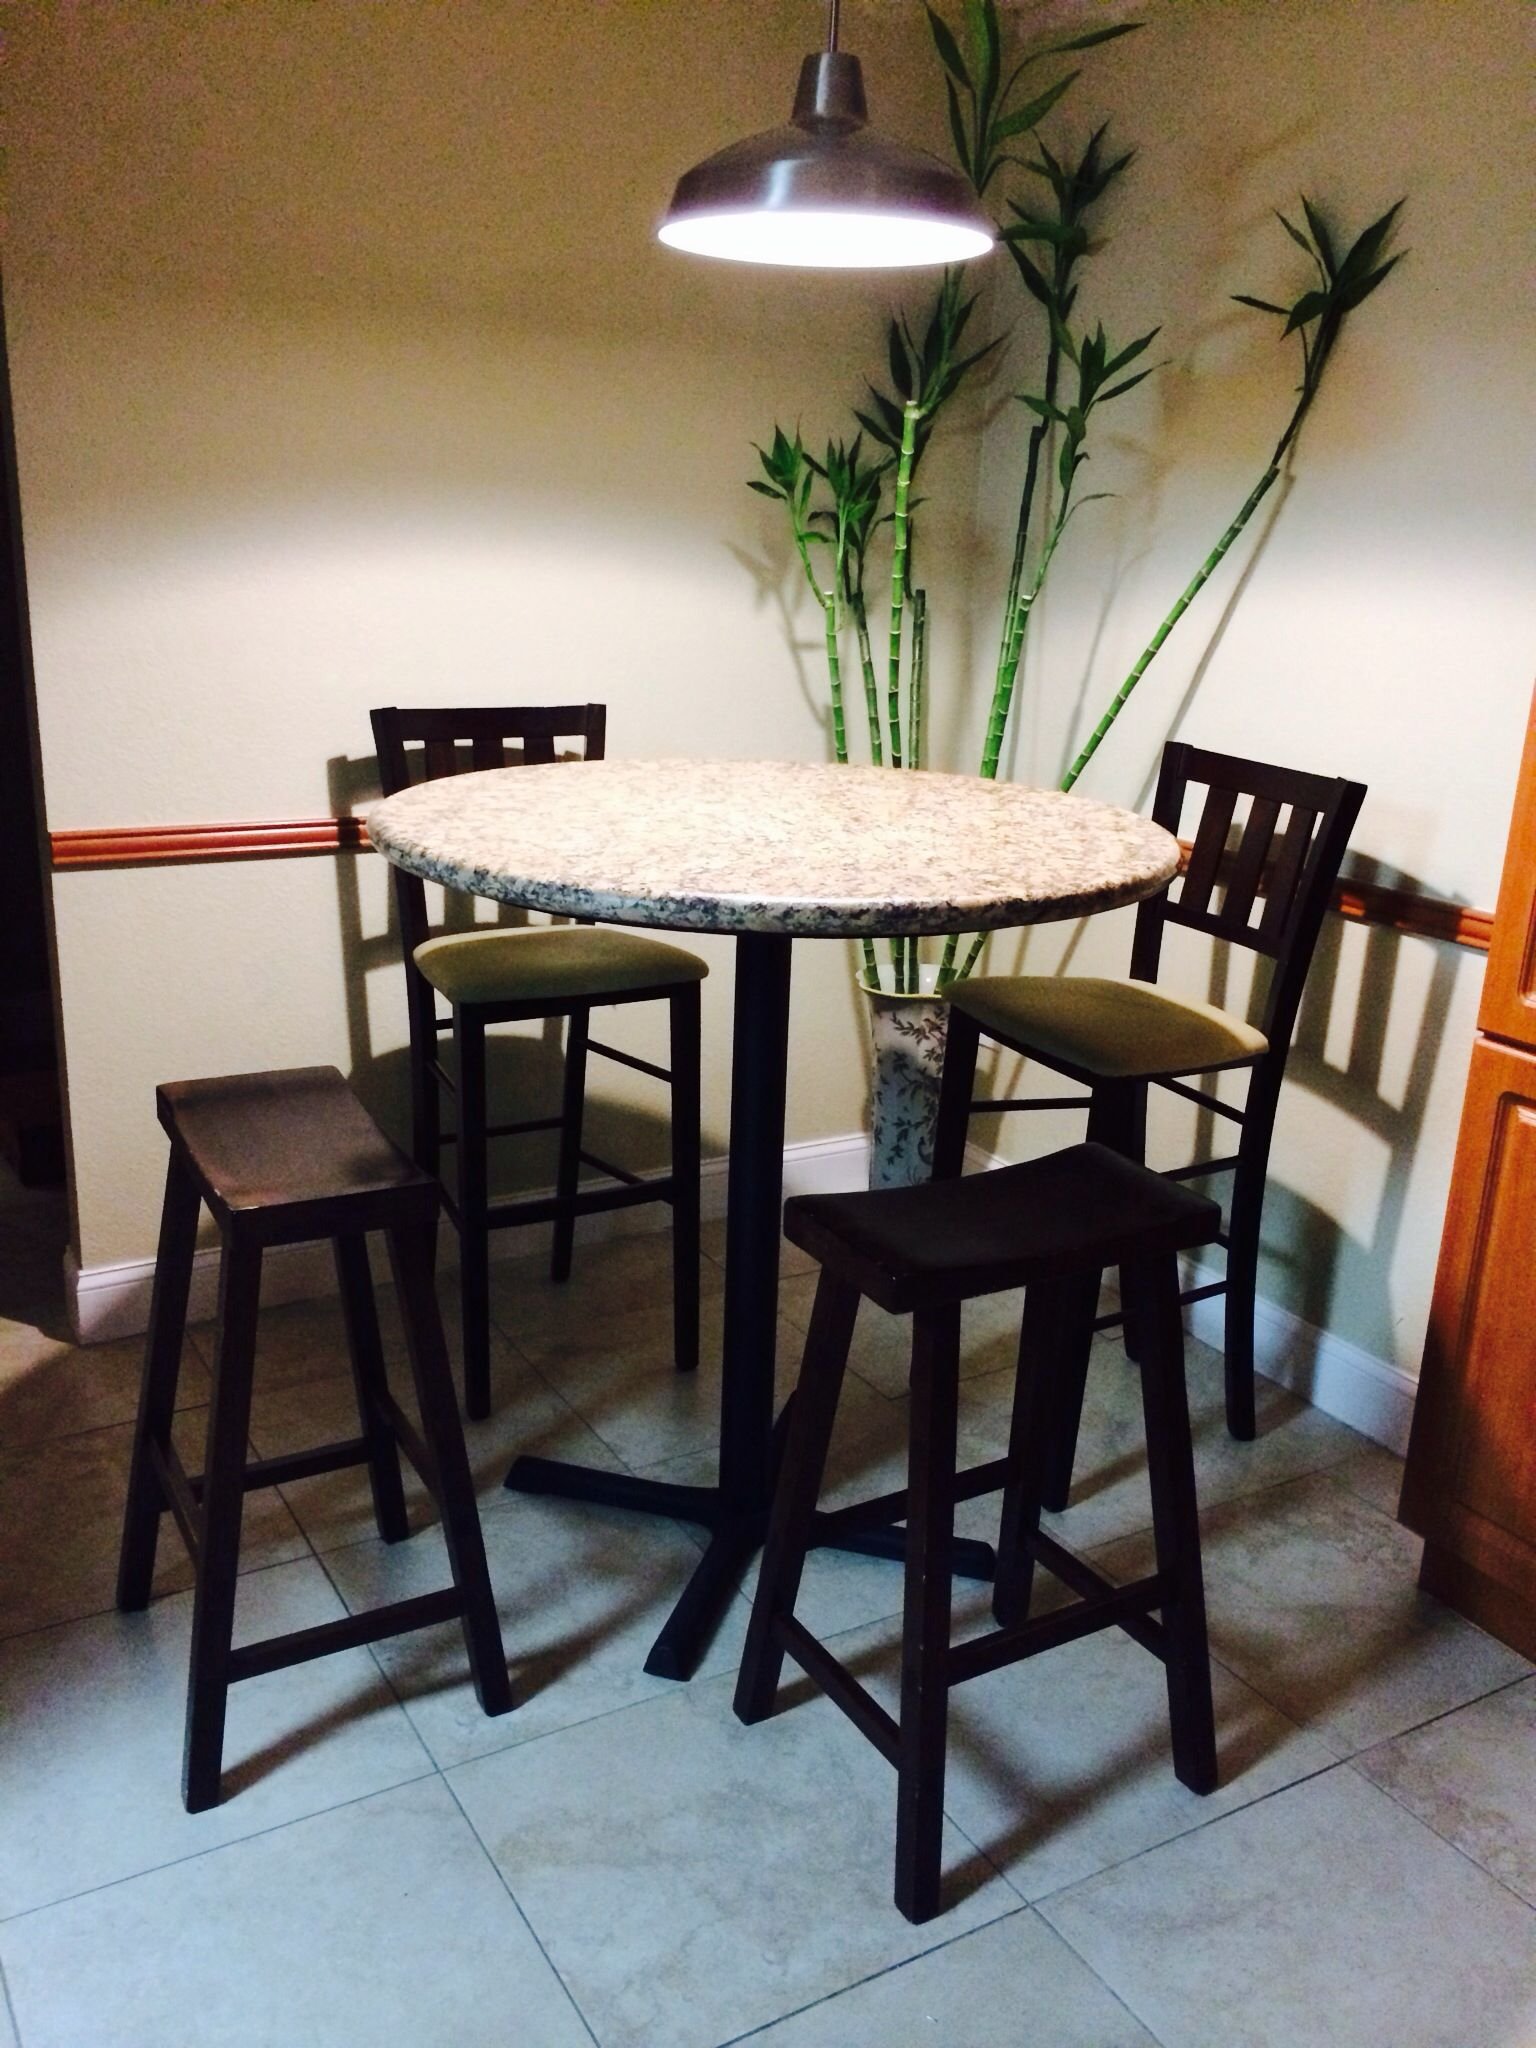 Pin By Daniel Garcia On Kitchen Ideas Bar Table And Stools Round Bar Table Dining Table